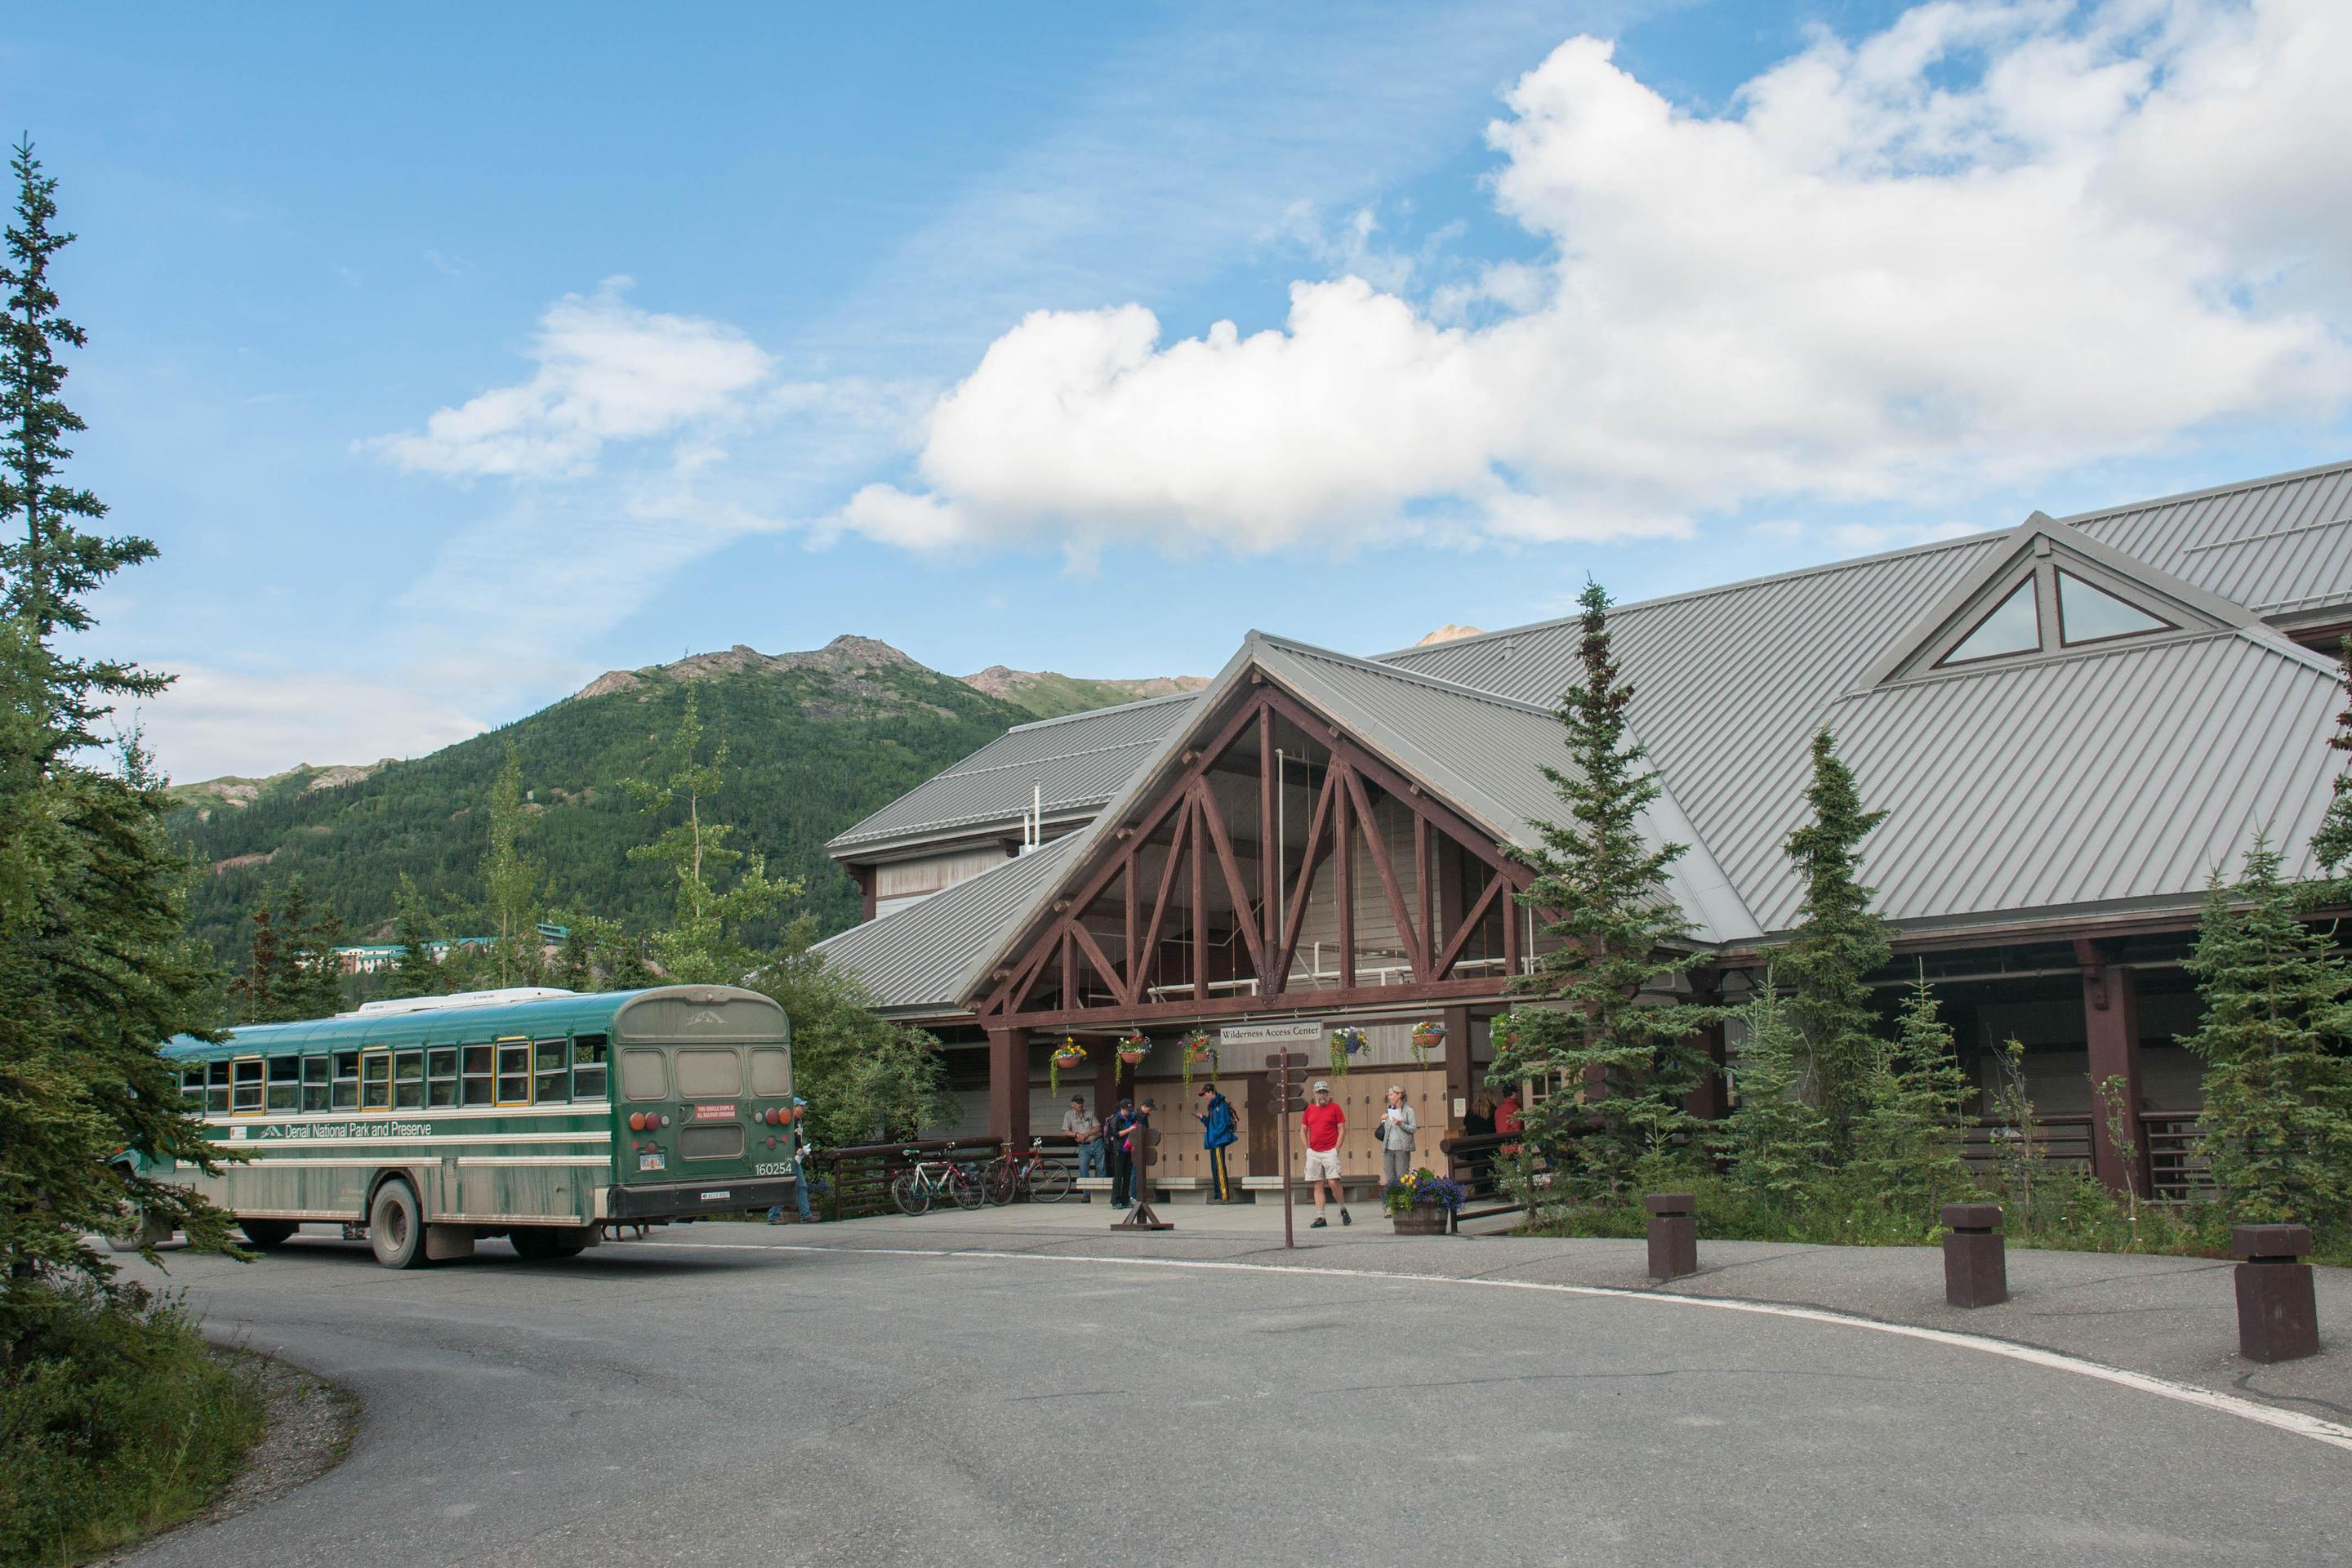 Denali Bus DepotThe Denali Bus Depot is the starting point for most bus trips into Denali